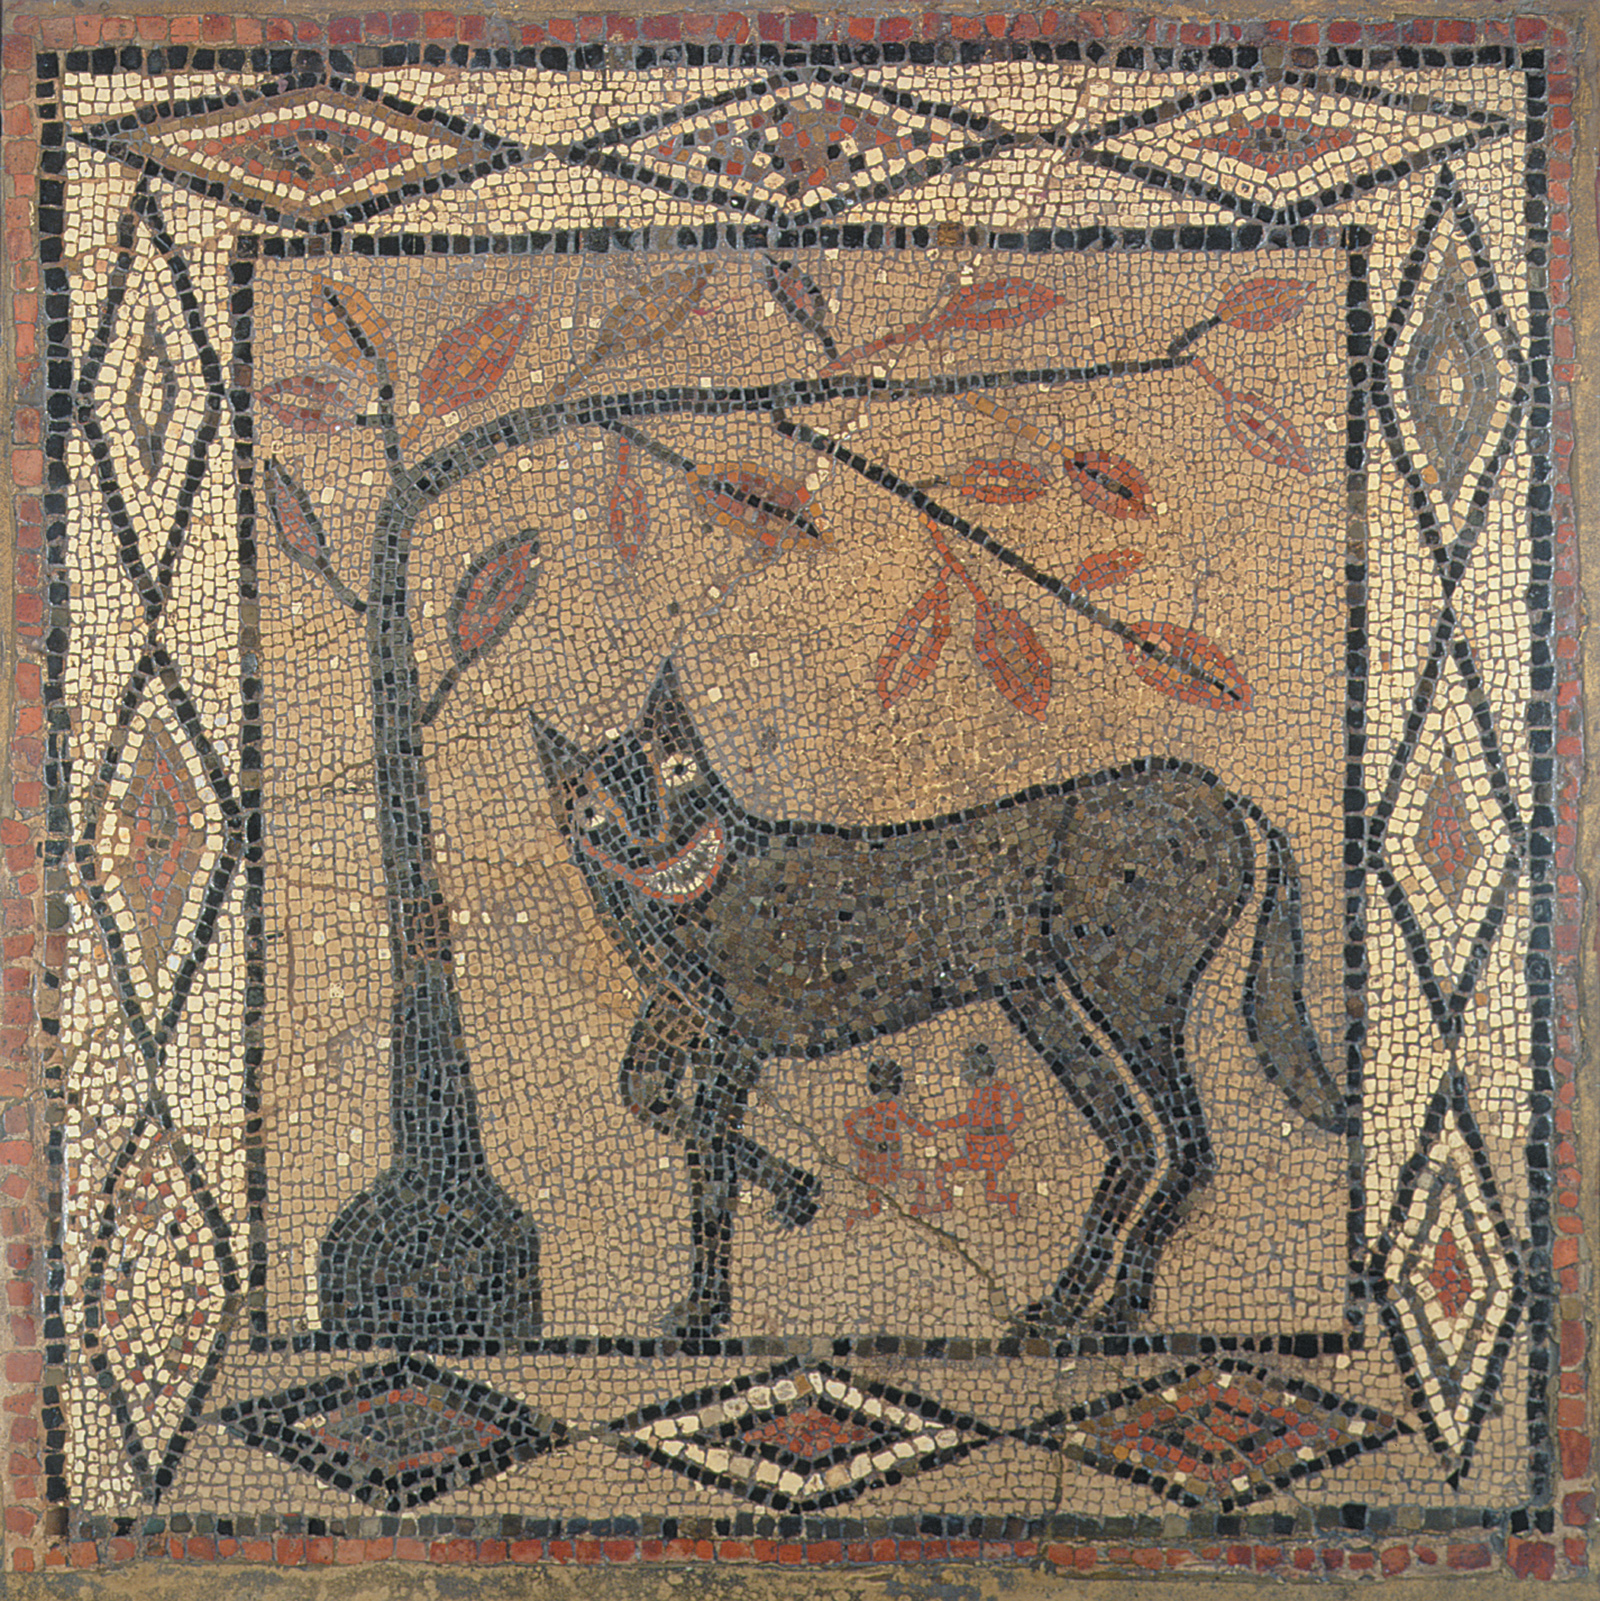 A mosaic of the wolf suckling Romulus and Remus, the twin founders of Rome, from the Roman fortress site at Aldborough near Leeds, circa 300 CE